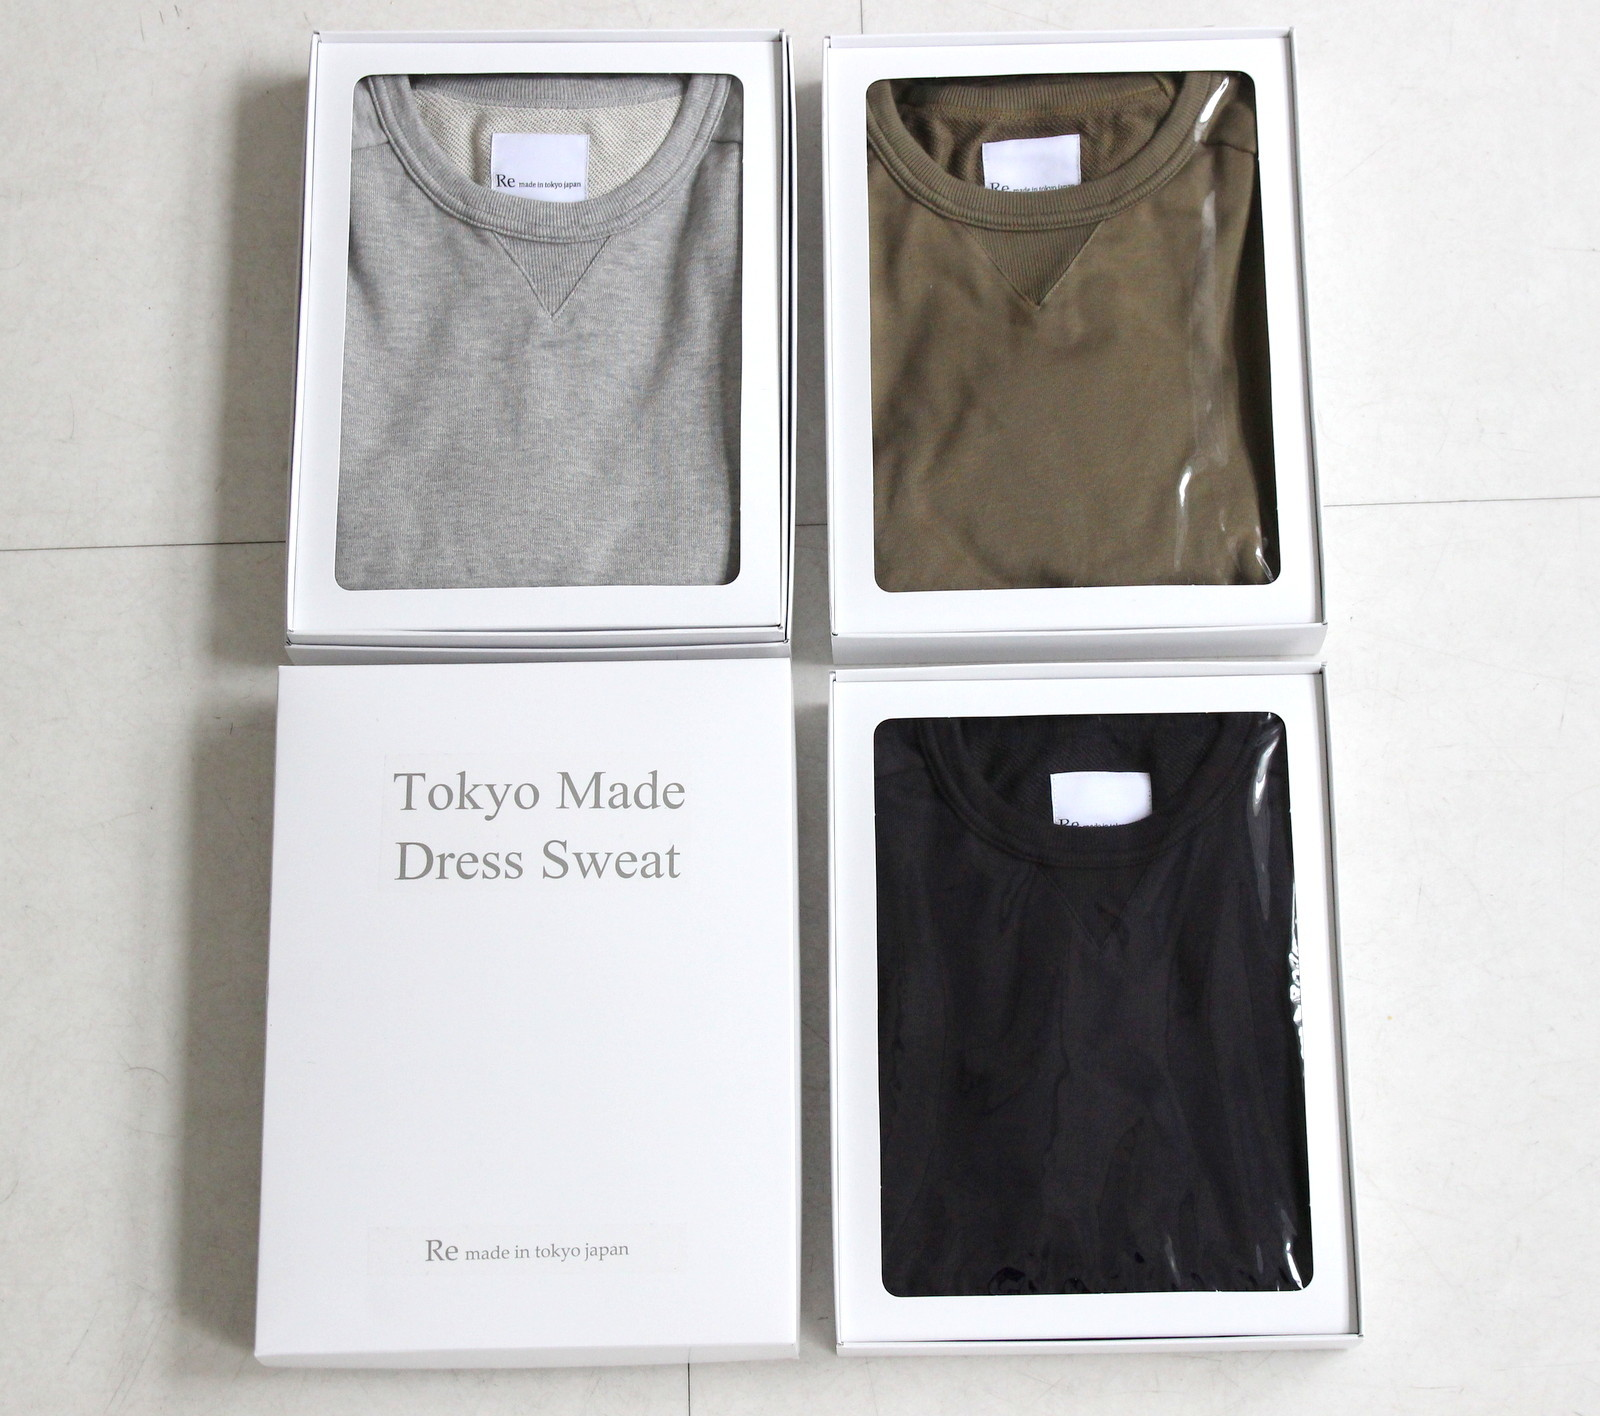 Tokyo Made Dress Sweat Shirt_c0379477_20194018.jpg